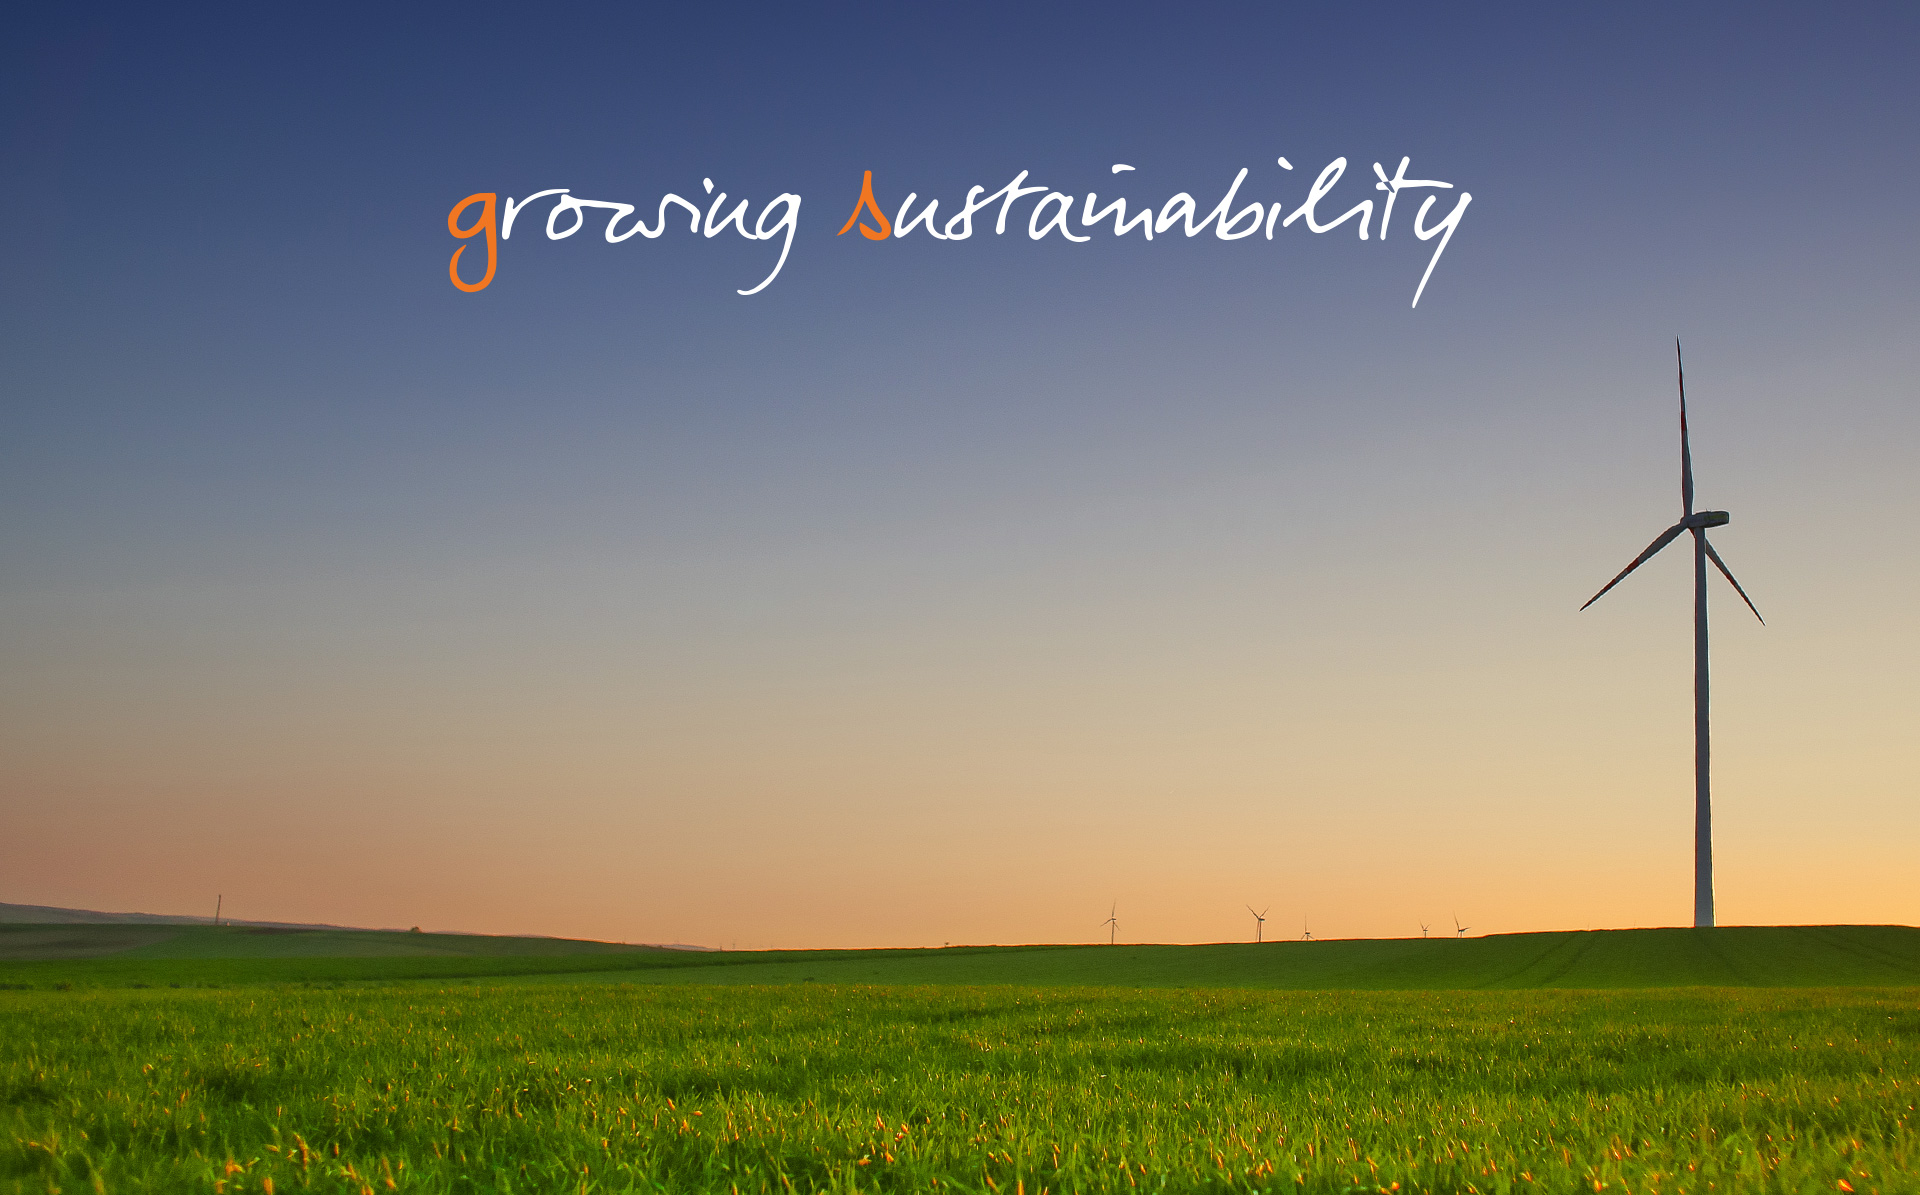 3-Growing-Sustainability-GS.jpg